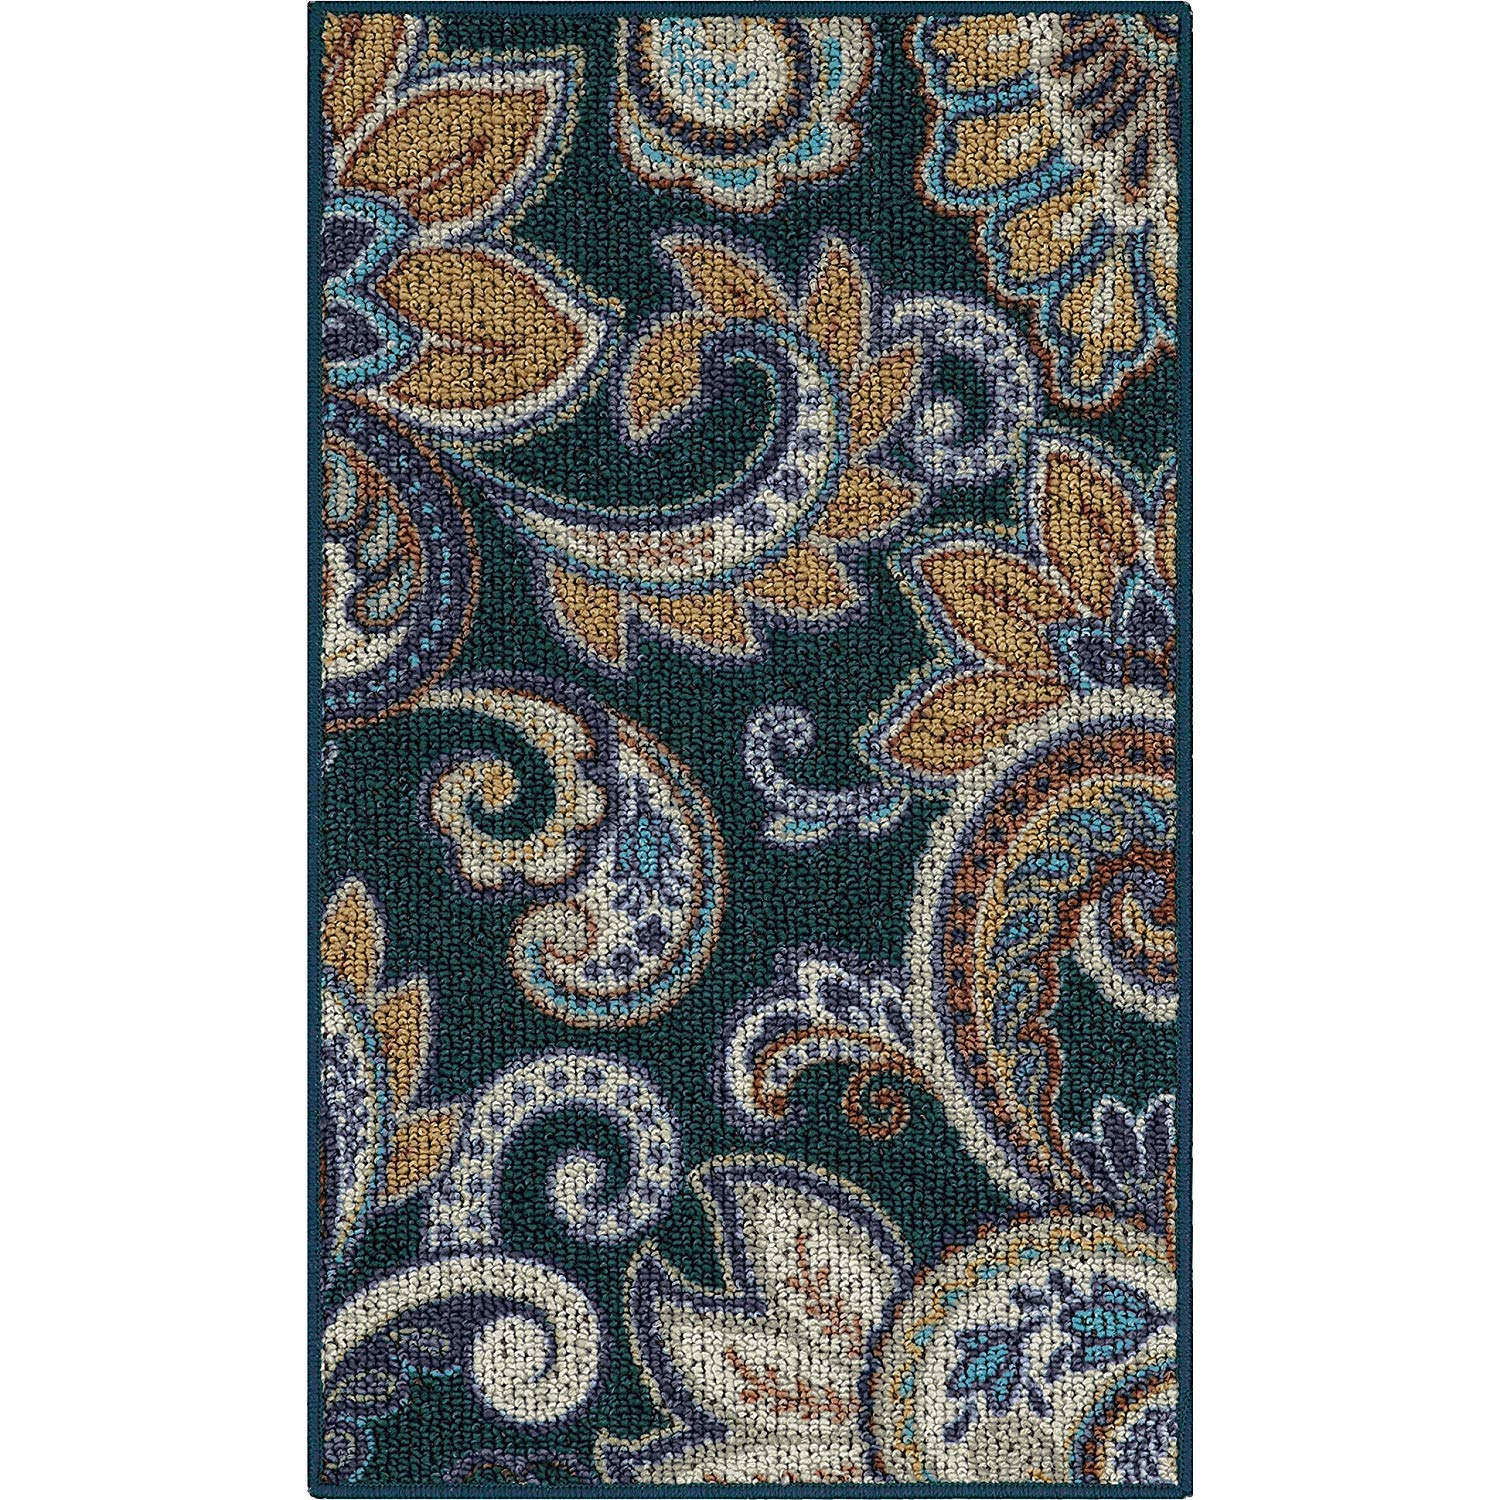 """D&H 1'8"""" X 5' Multi Color Paisley Berber Scroll Design Runner Rug, Indoor Floral Geometric Cottage Hallway Entryway Rectangle Country Carpet, Large Flooring Mat Teal Blue Brown, Nylon Olefin"""